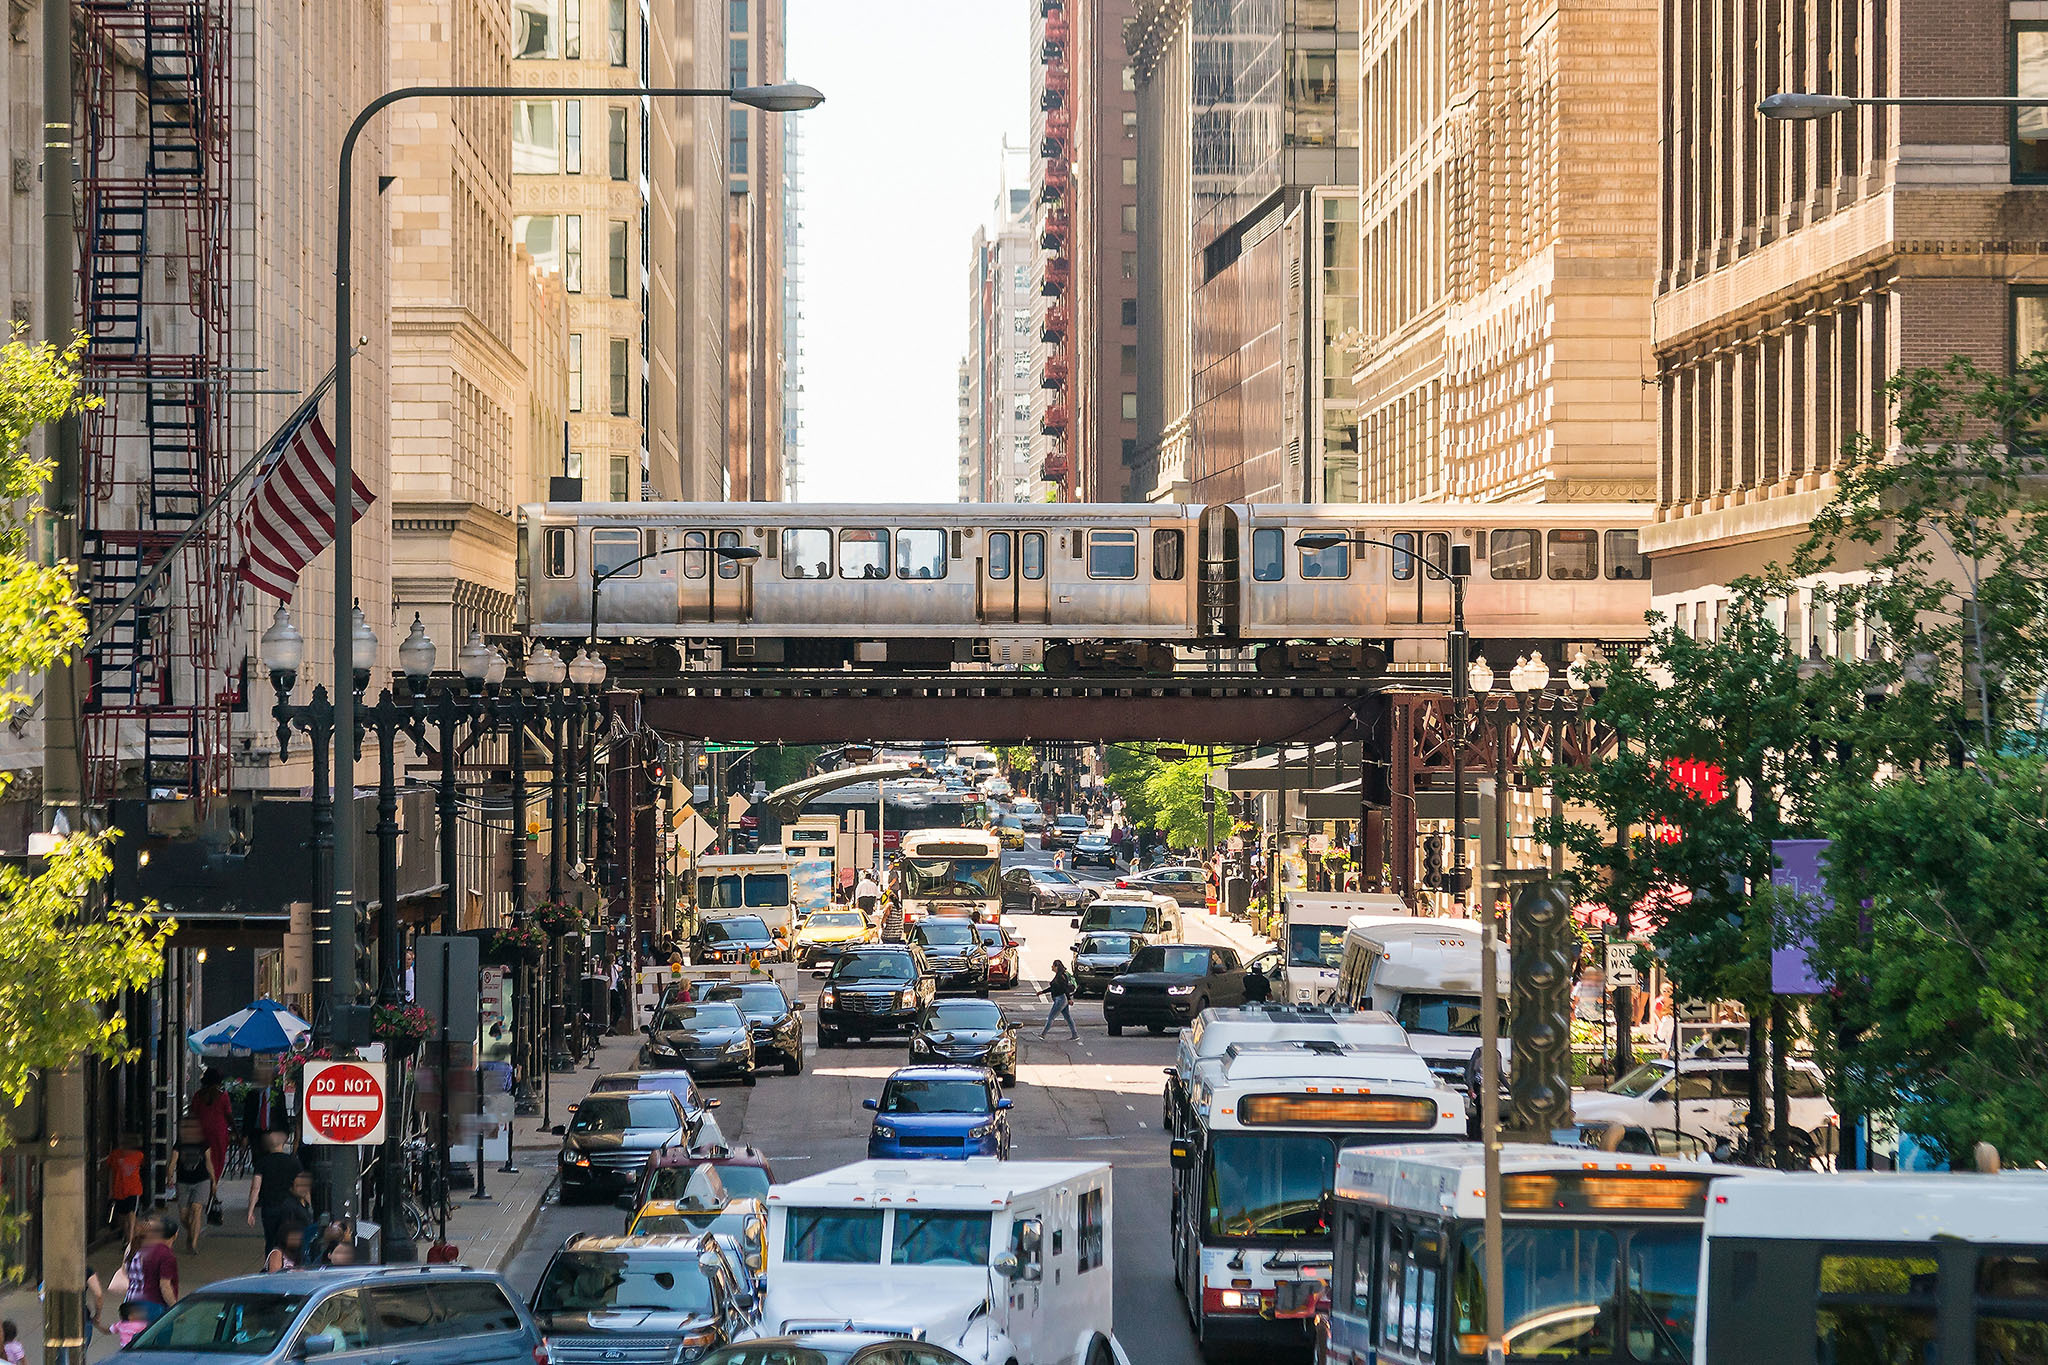 Chicago's population is shrinking, but it's also centralizing